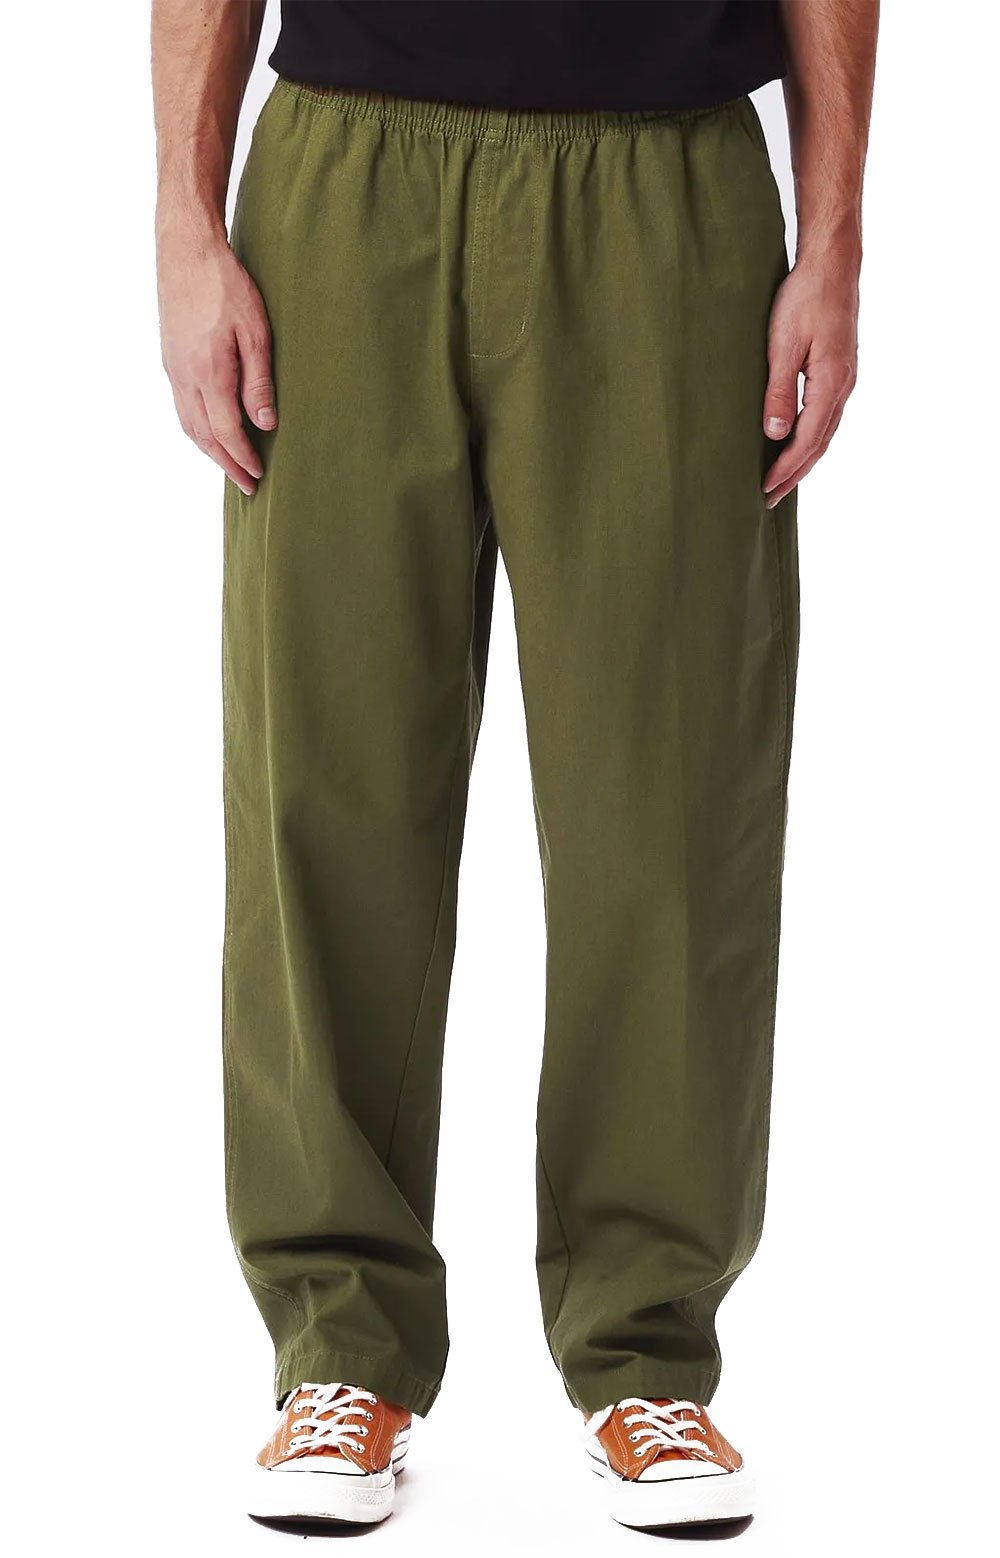 Easy Twill Pant - Army Tent